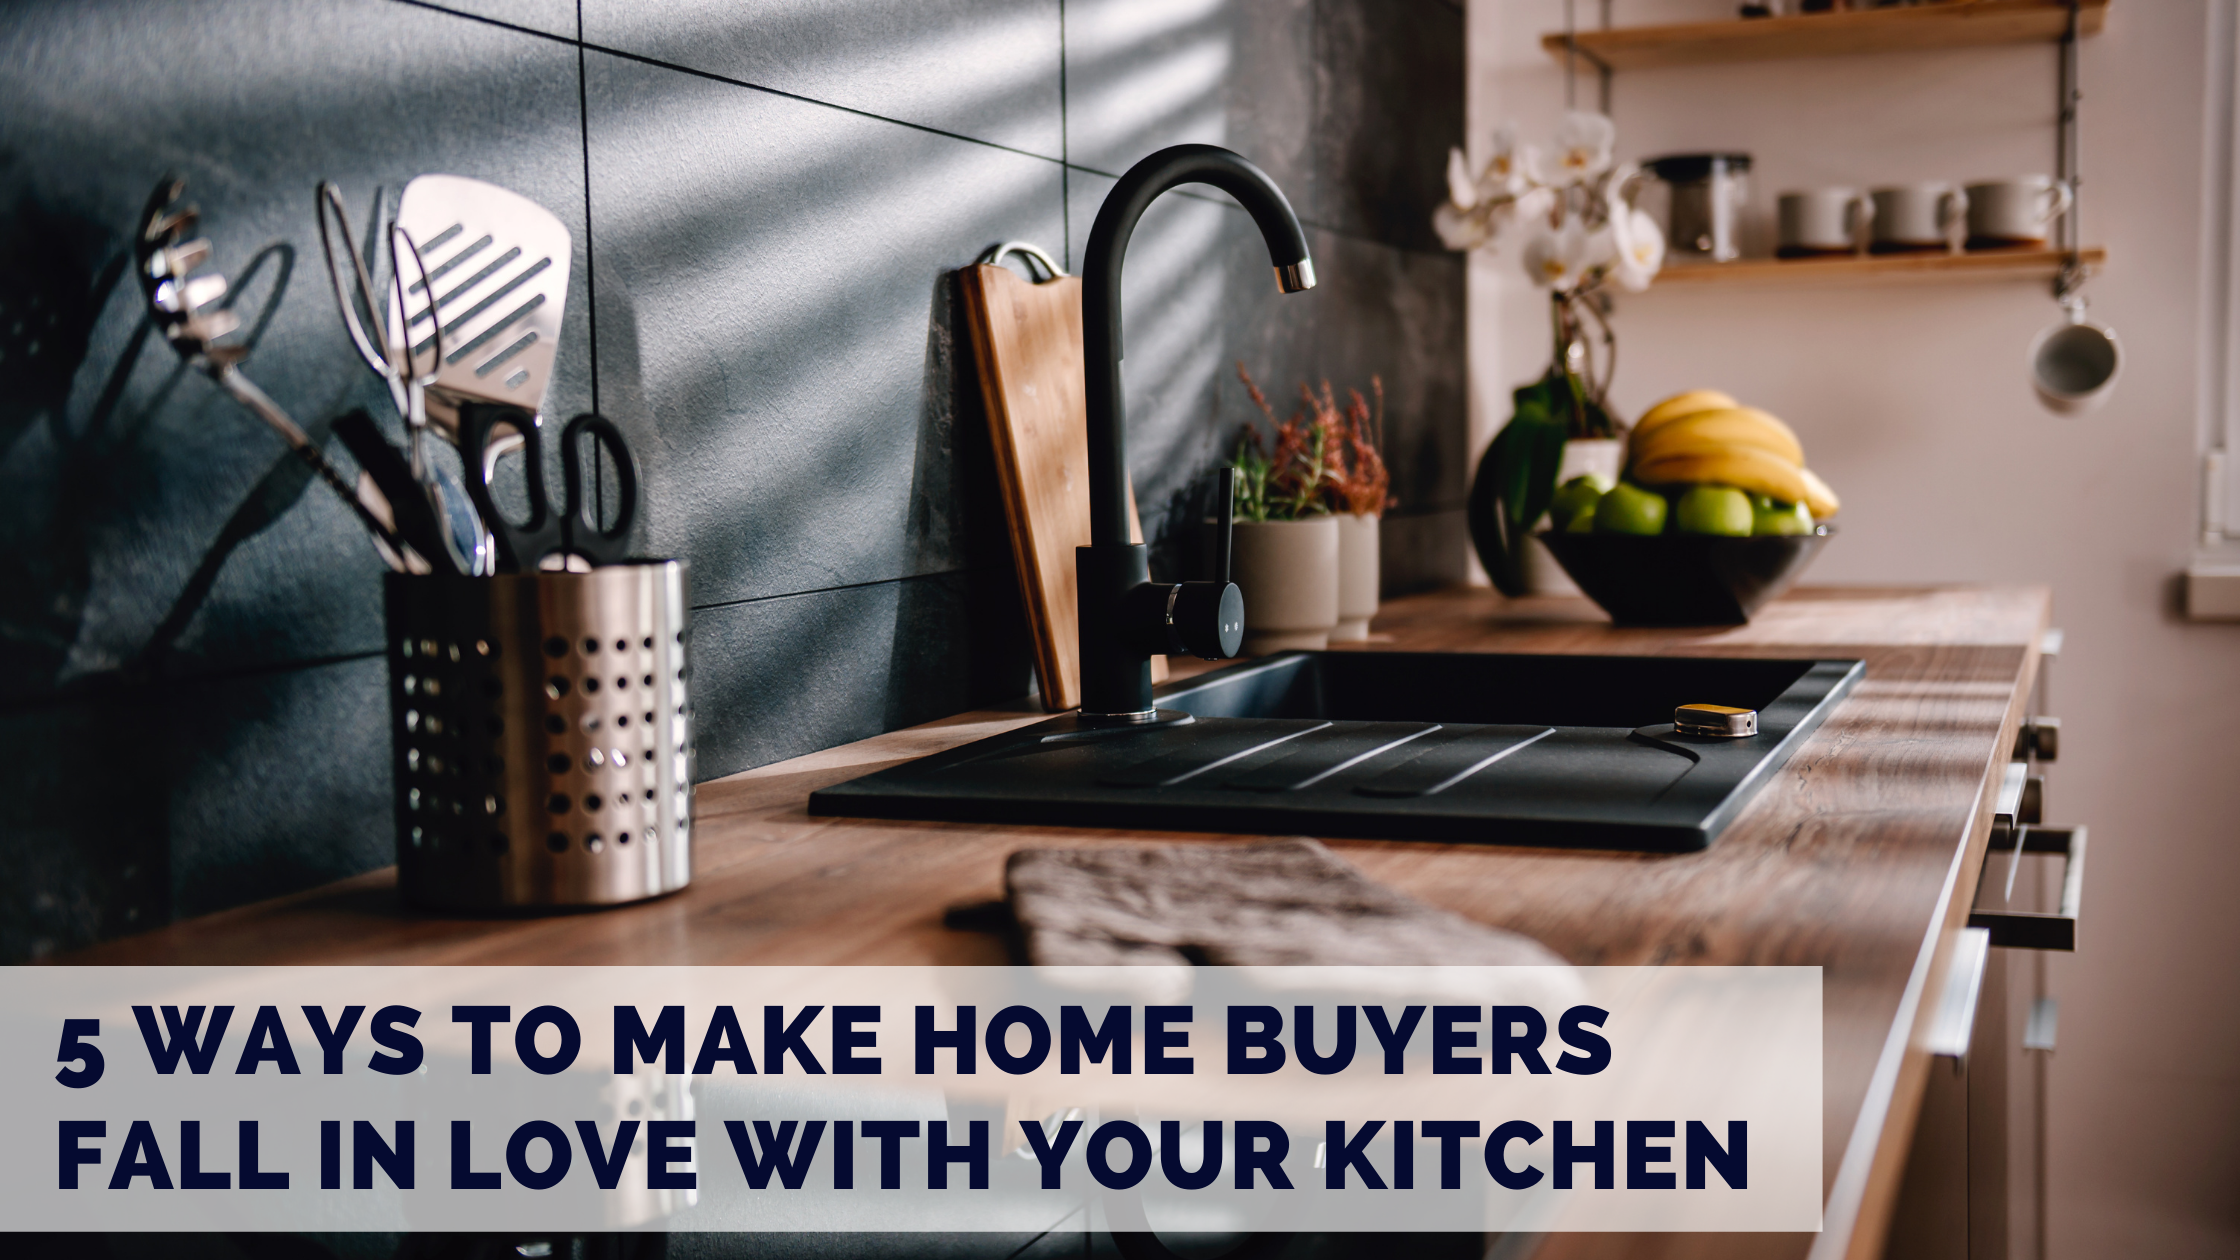 5 Ways to Make Home Buyers Fall in Love with Your Kitchen